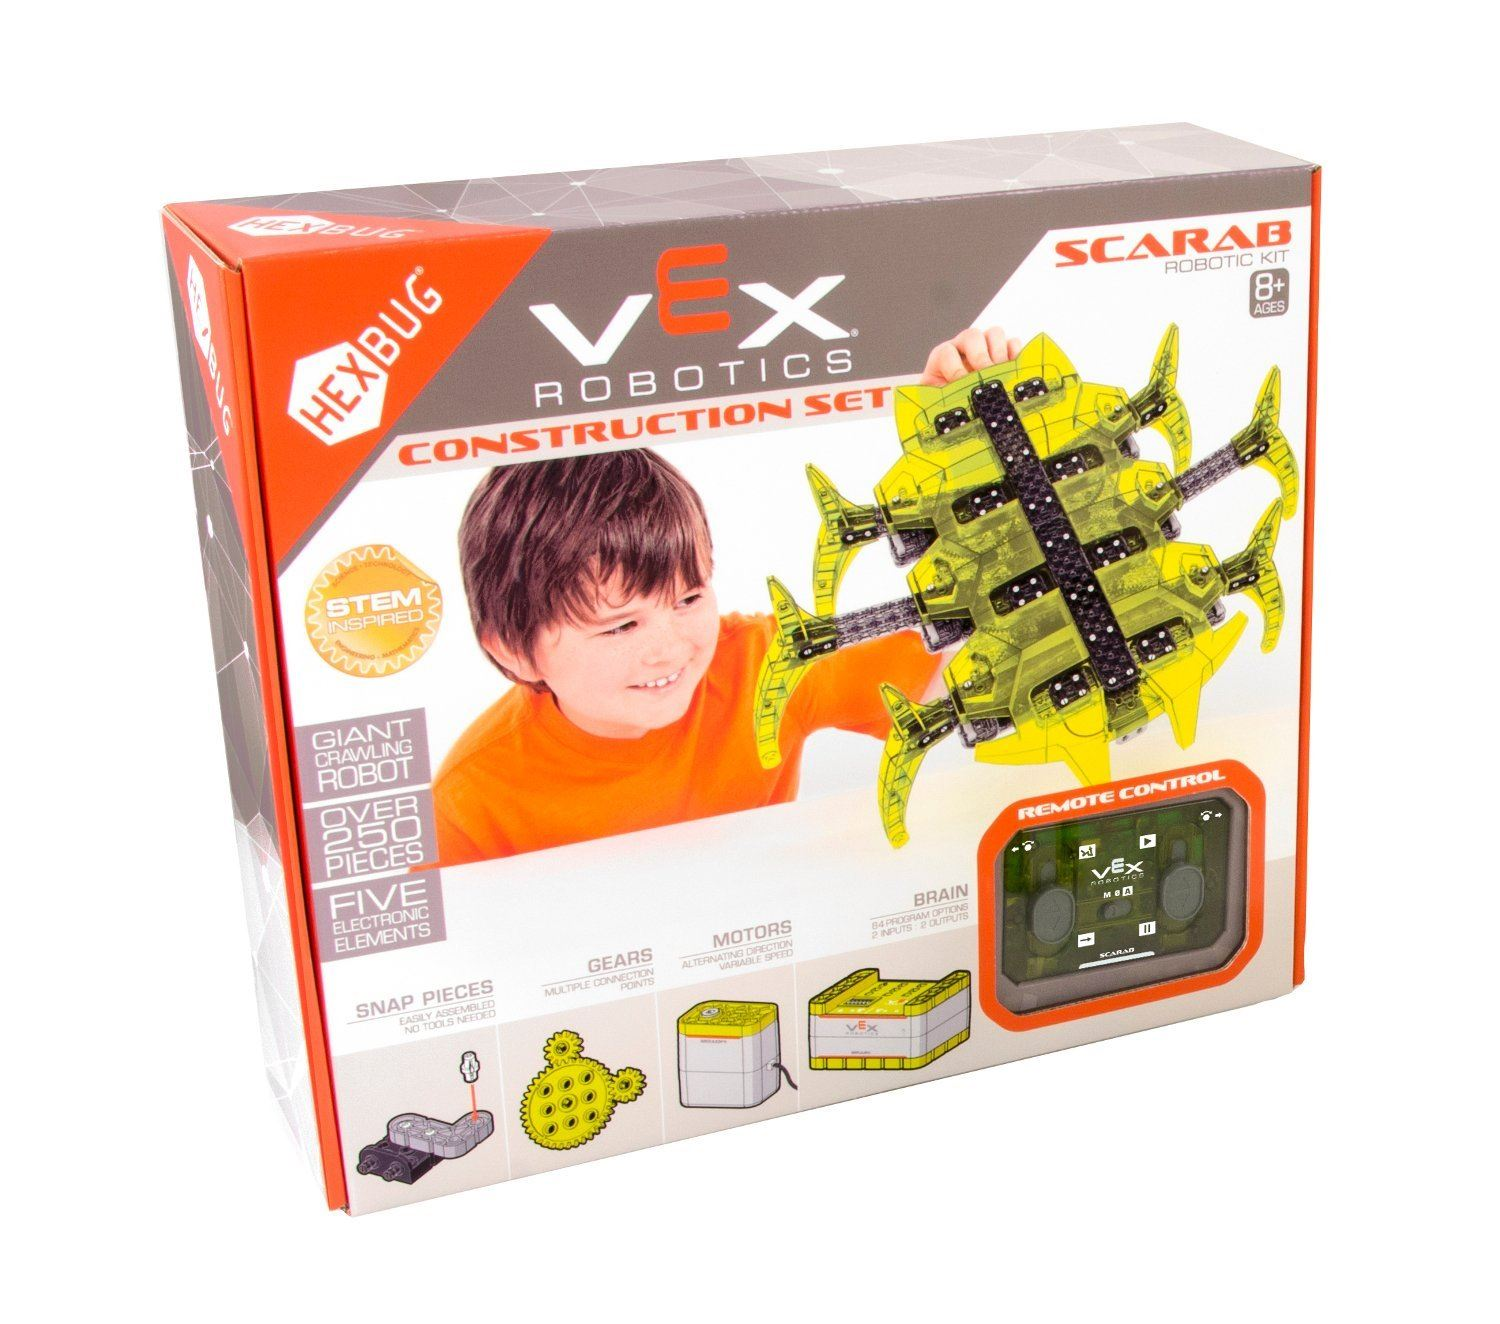 Hexbug Vex Robotics Construction Set Scarab Robotic Kit